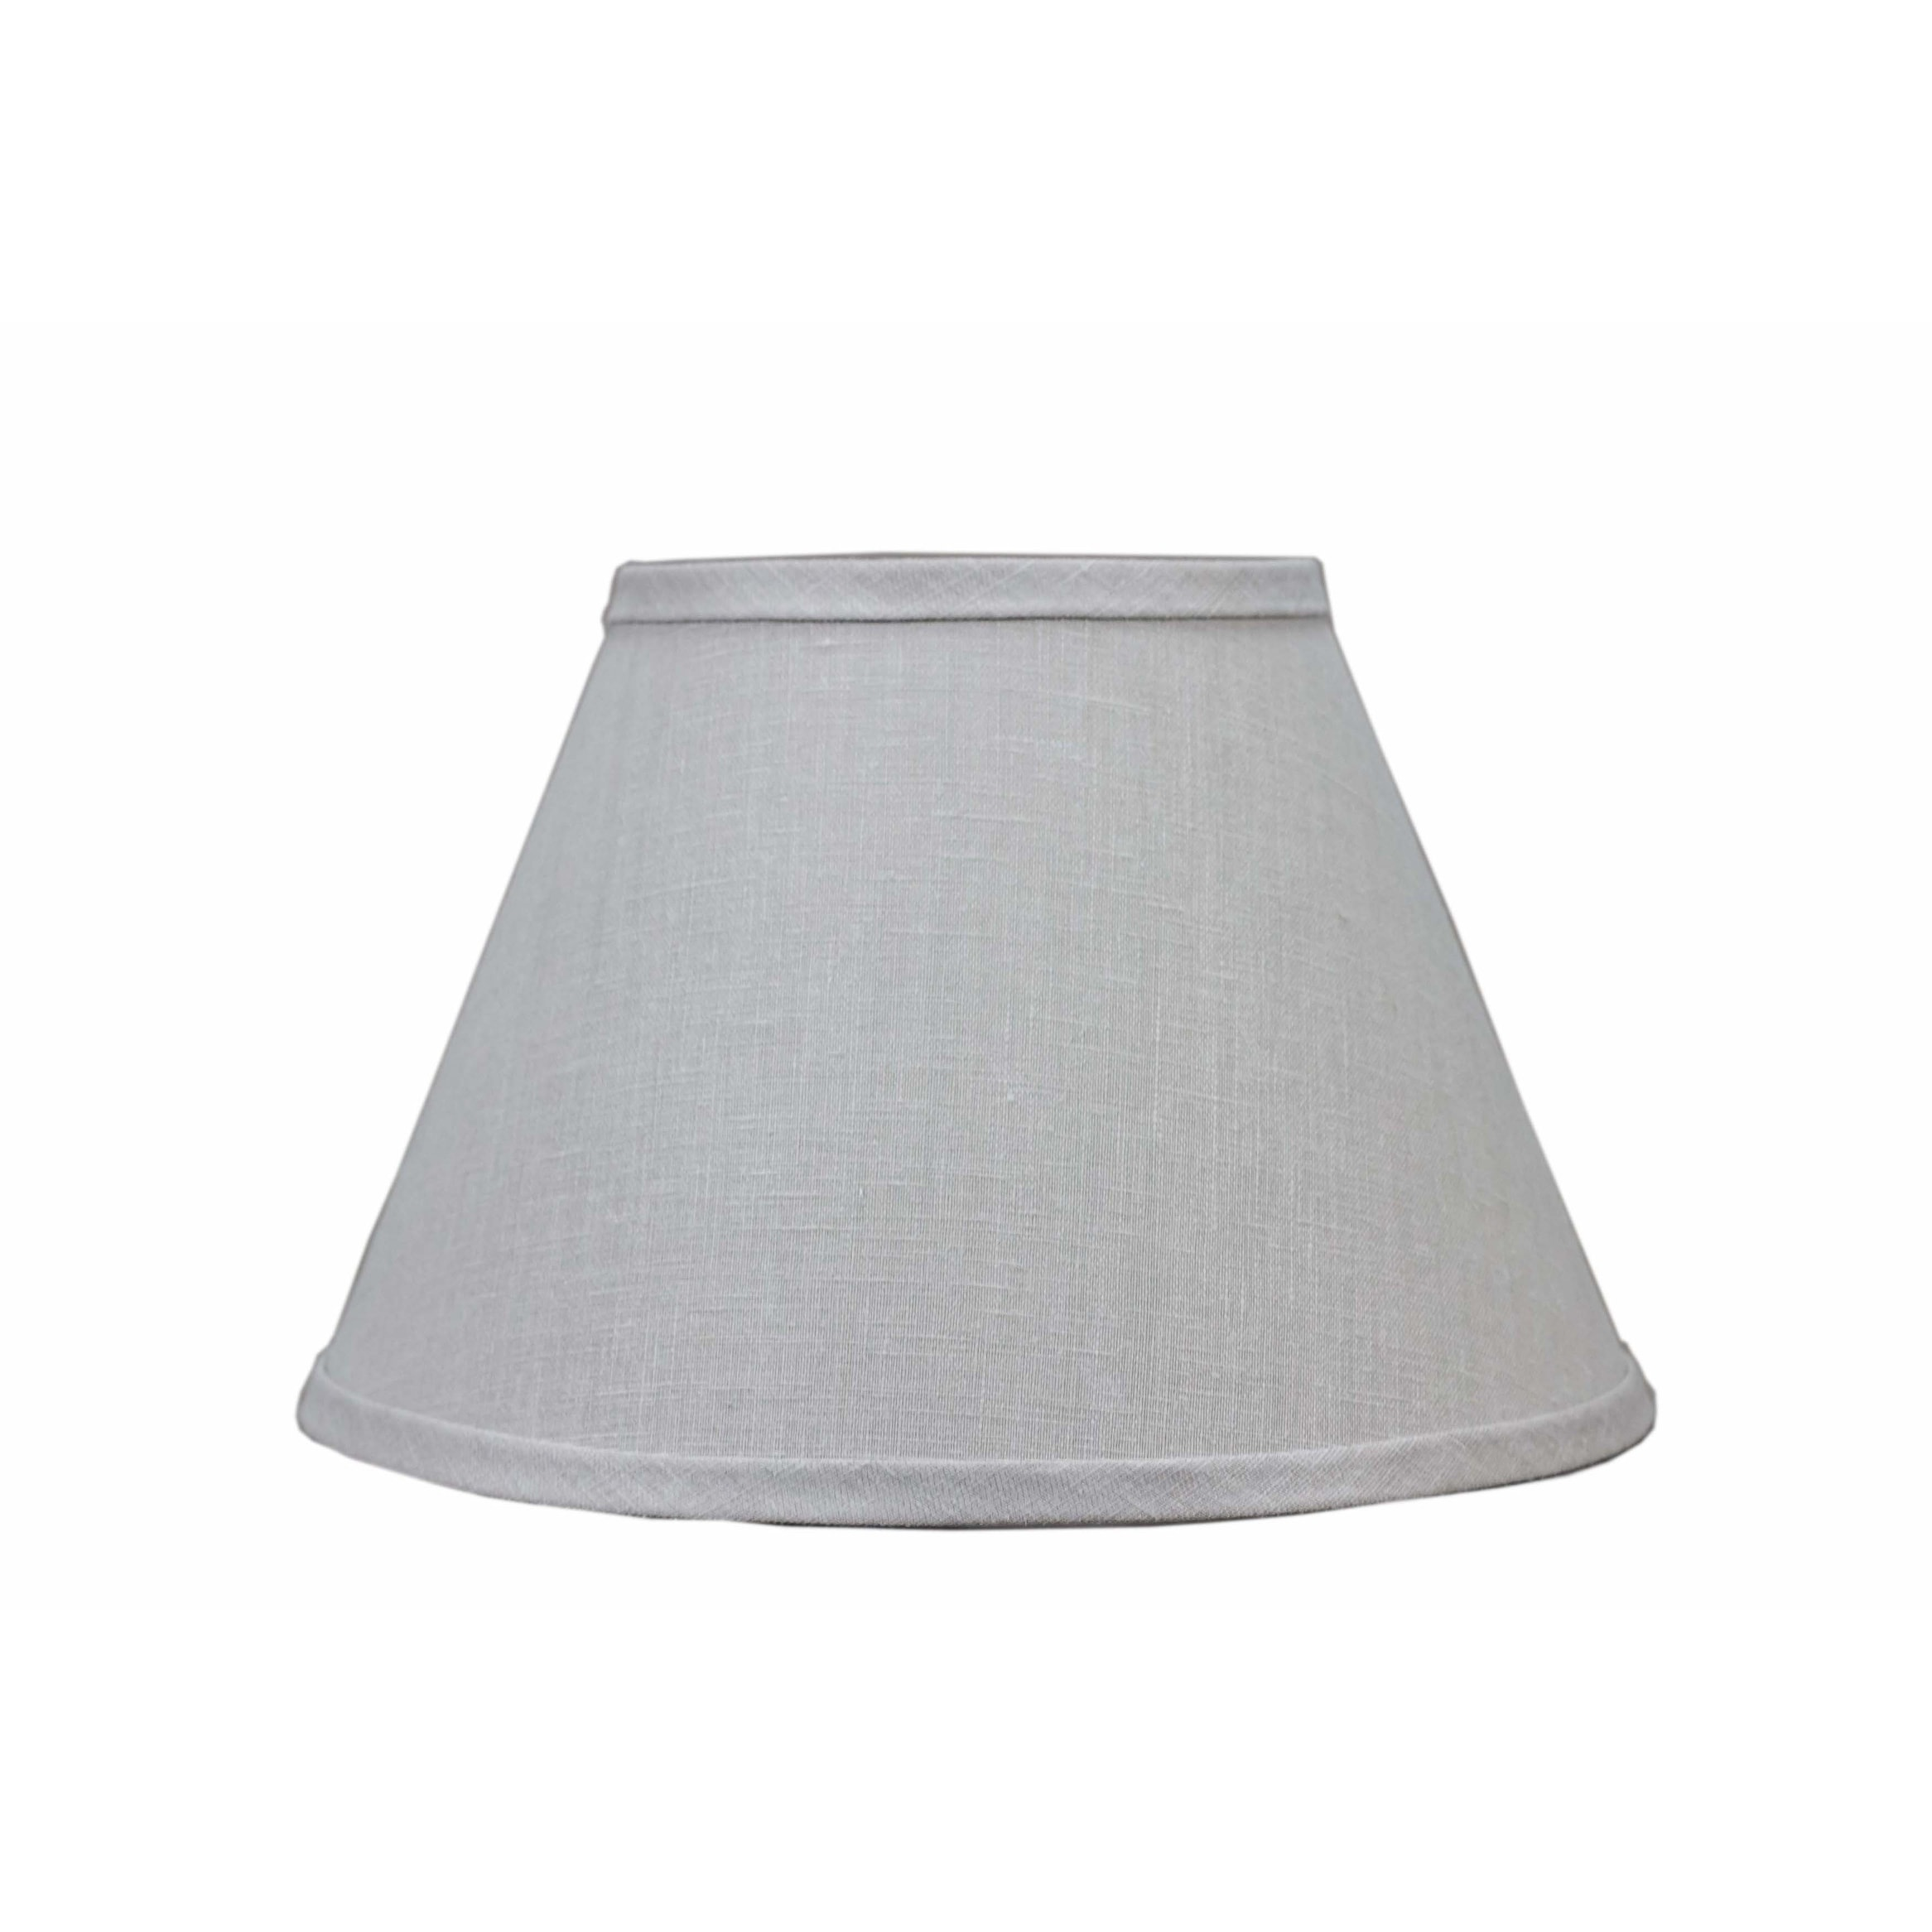 set be lamp future to blanche made gourd lighting shade common it paper white comes when stereotypes in uno will inch fitter drum parchment shades the heavy safavieh of how